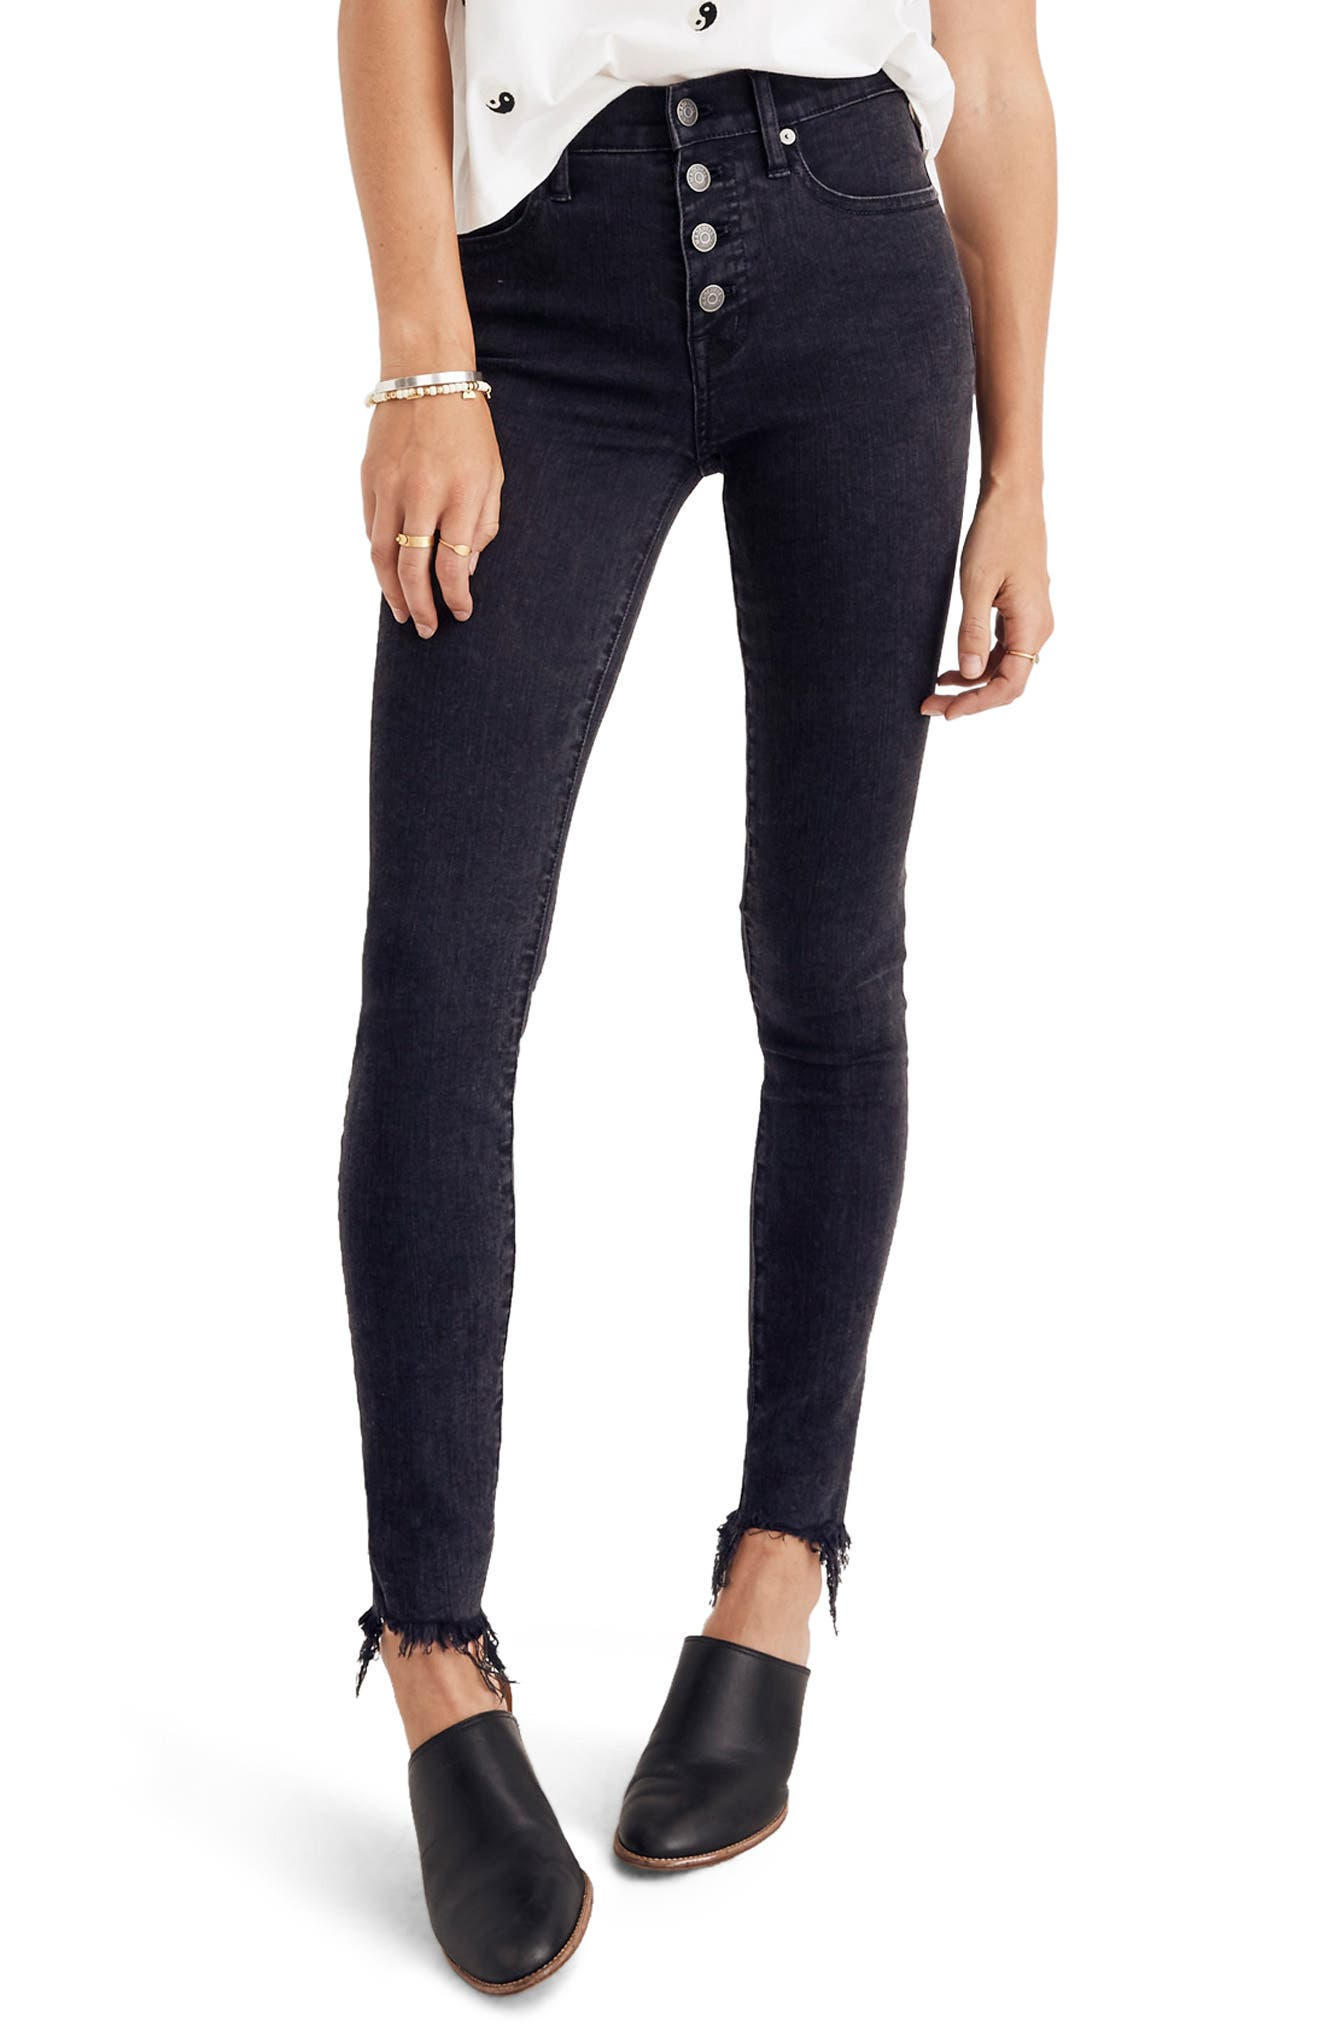 Madewell 9-Inch Button Ankle Skinny Jeans (Berkeley Wash) (Regular & Plus Size)